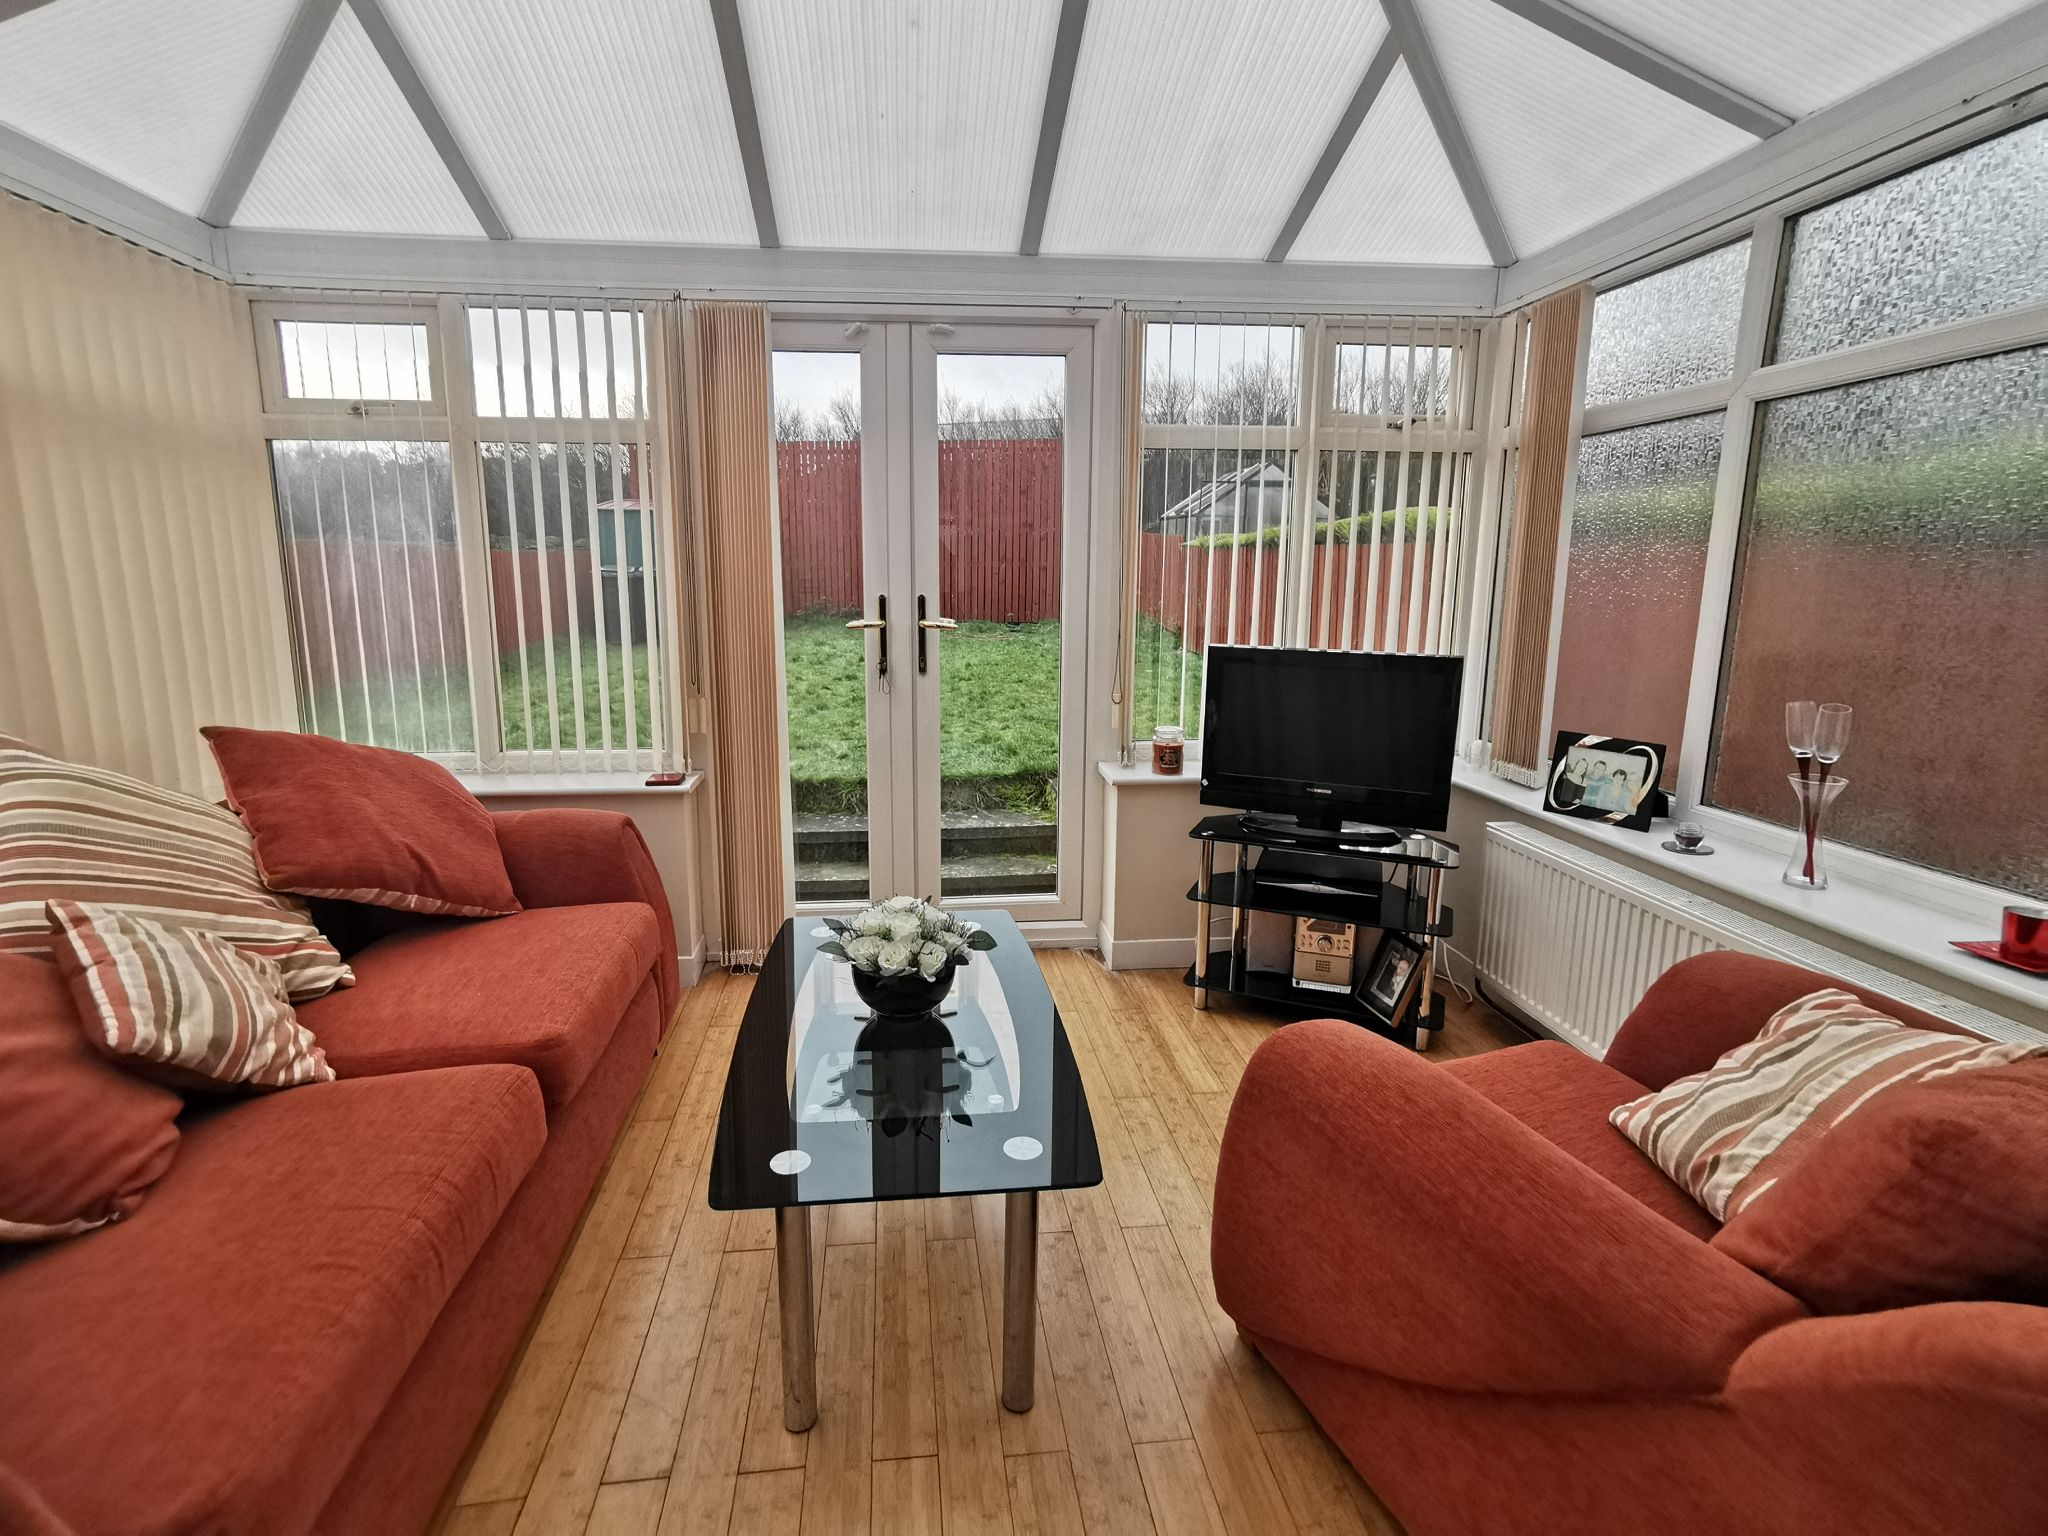 3 bedroom semi-detached house in Bradford - Photograph 18.